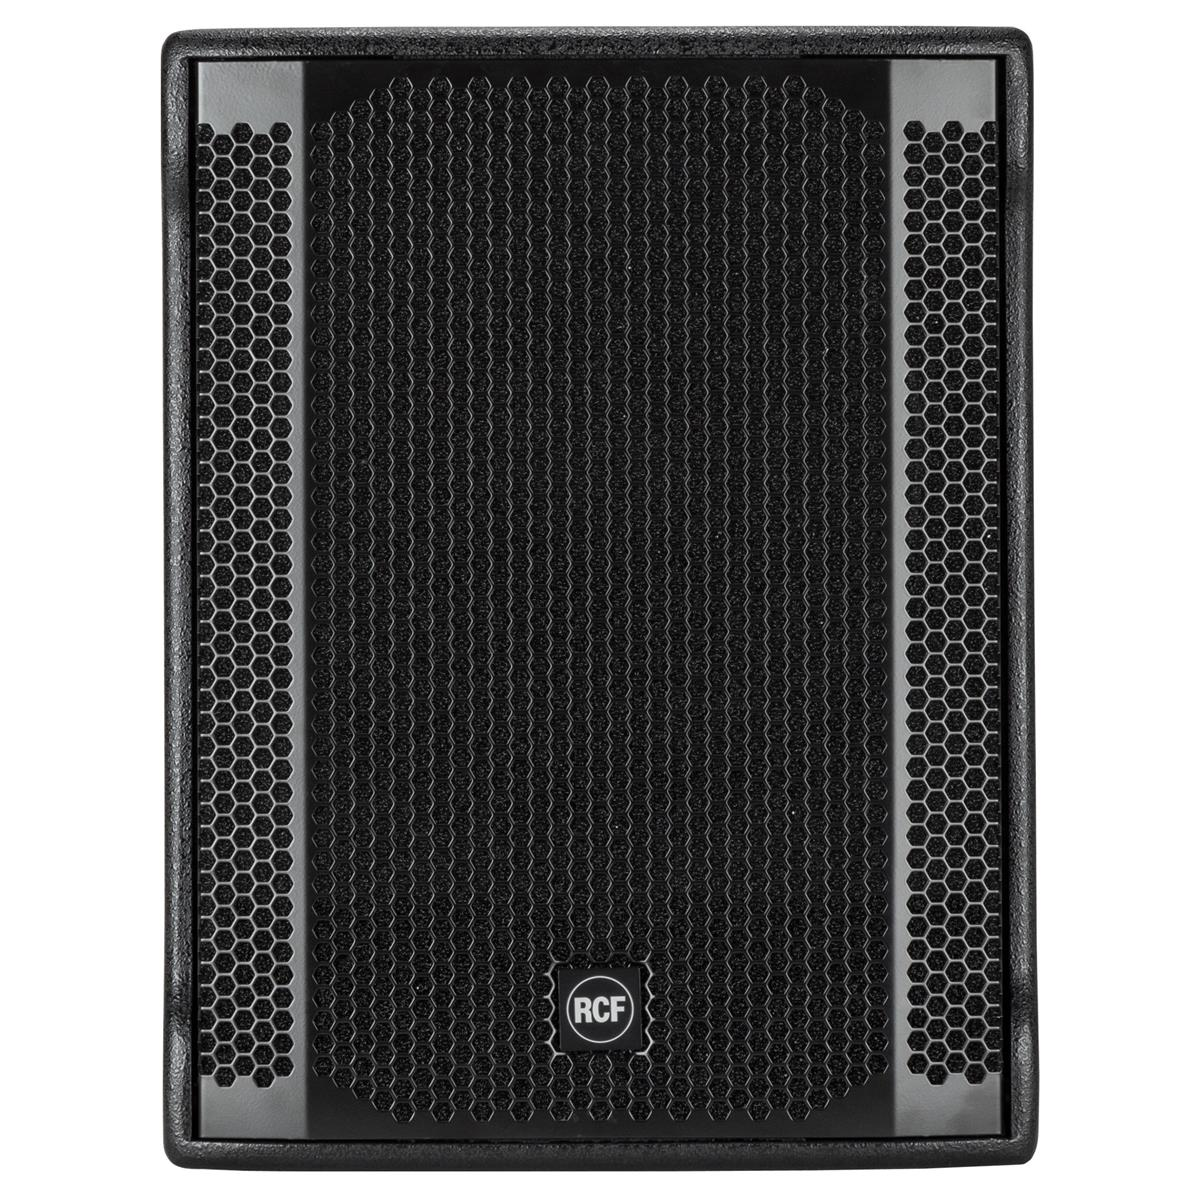 RCF 15in Bass Reflex Active Subwoofer, 700Wrms, 1400Wpeak